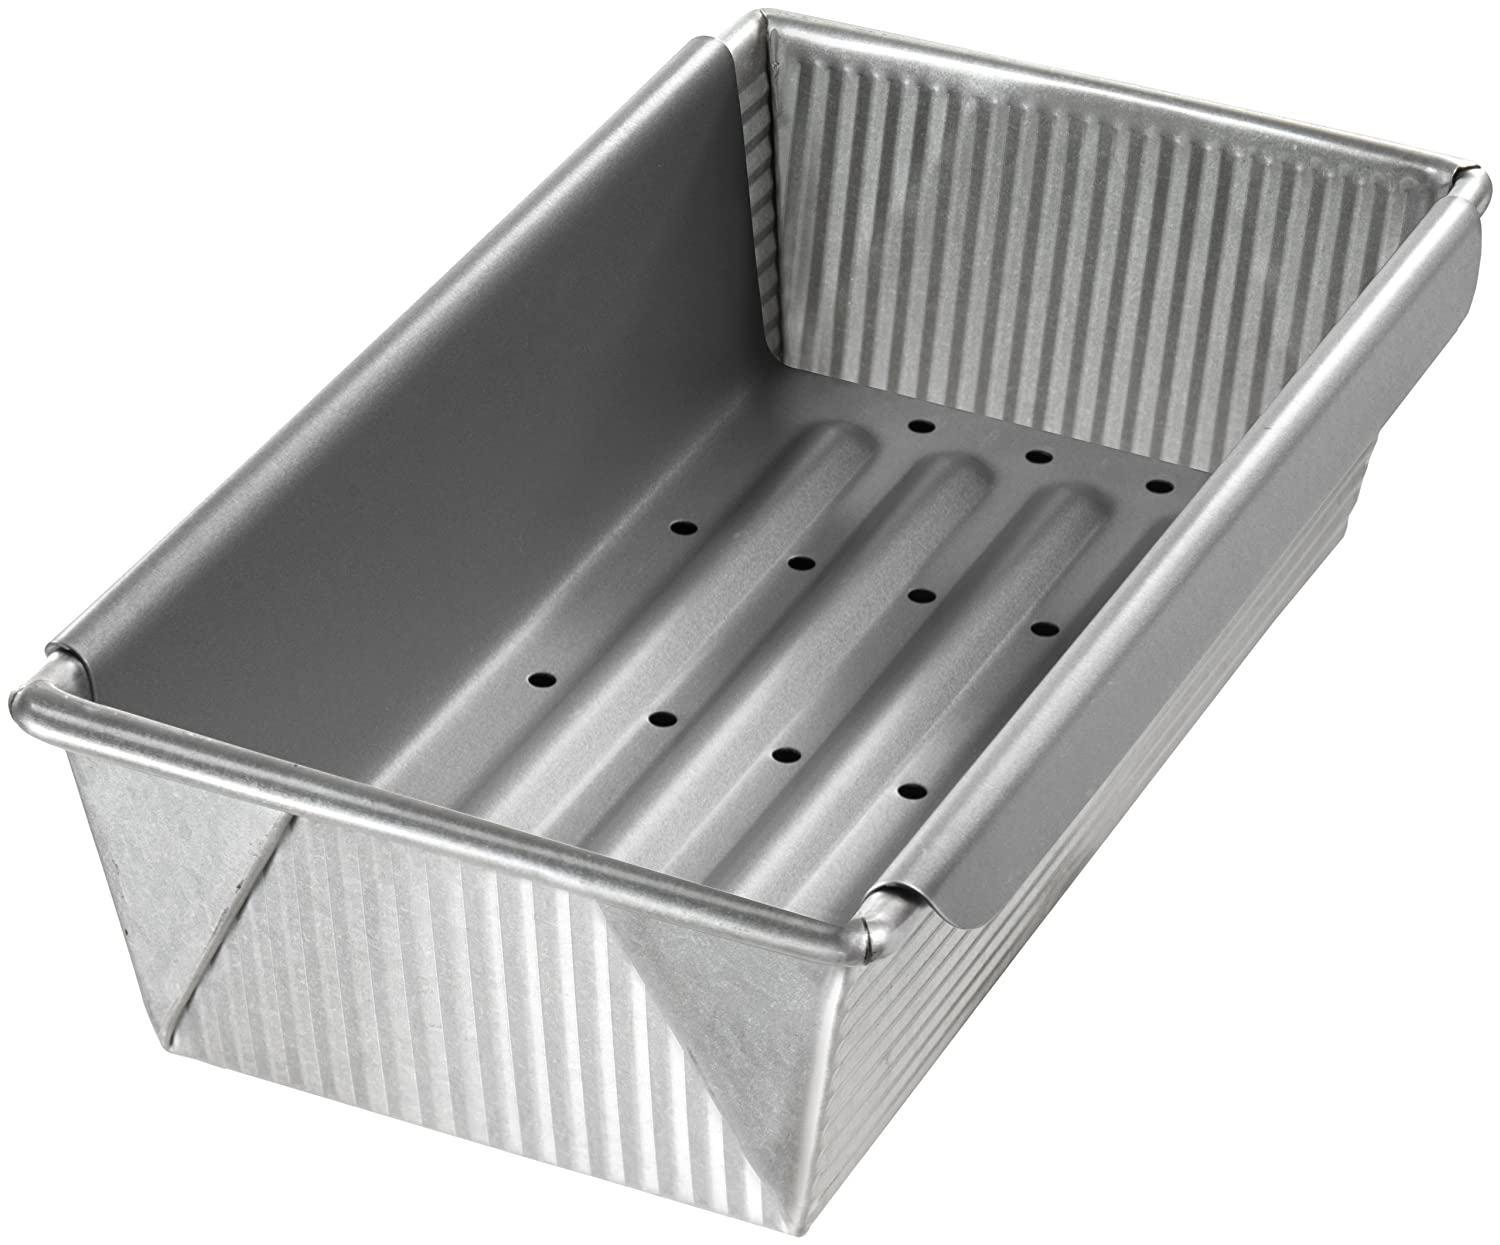 USA Pans 10 by 5-Inch Meat Loaf Pan with Insert 1157LF